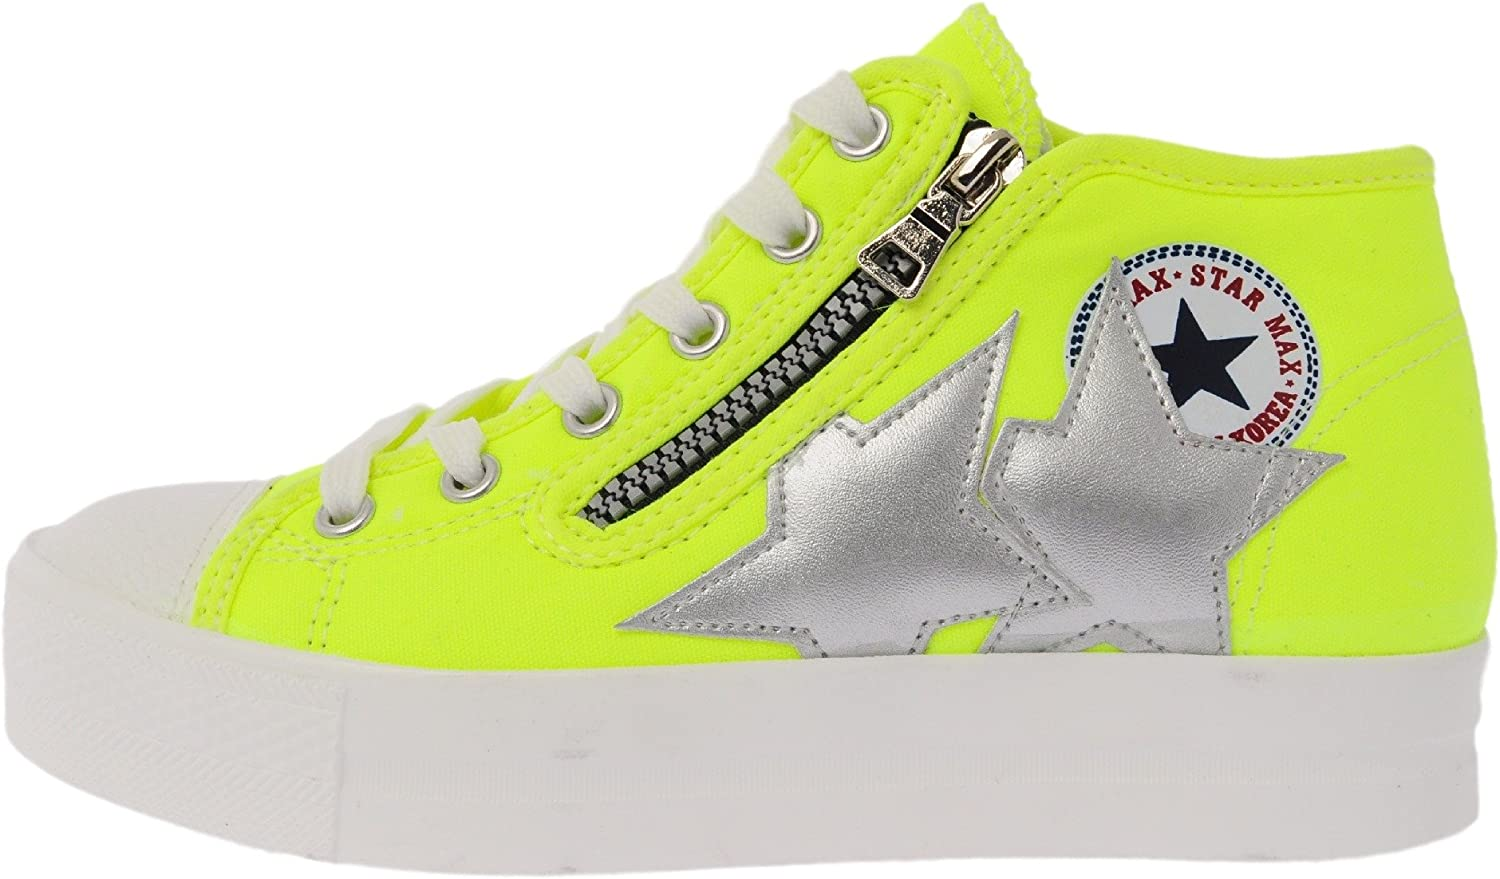 Maxstar C5 6Holes Synthetic Leather White Platform Canvas Sneakers